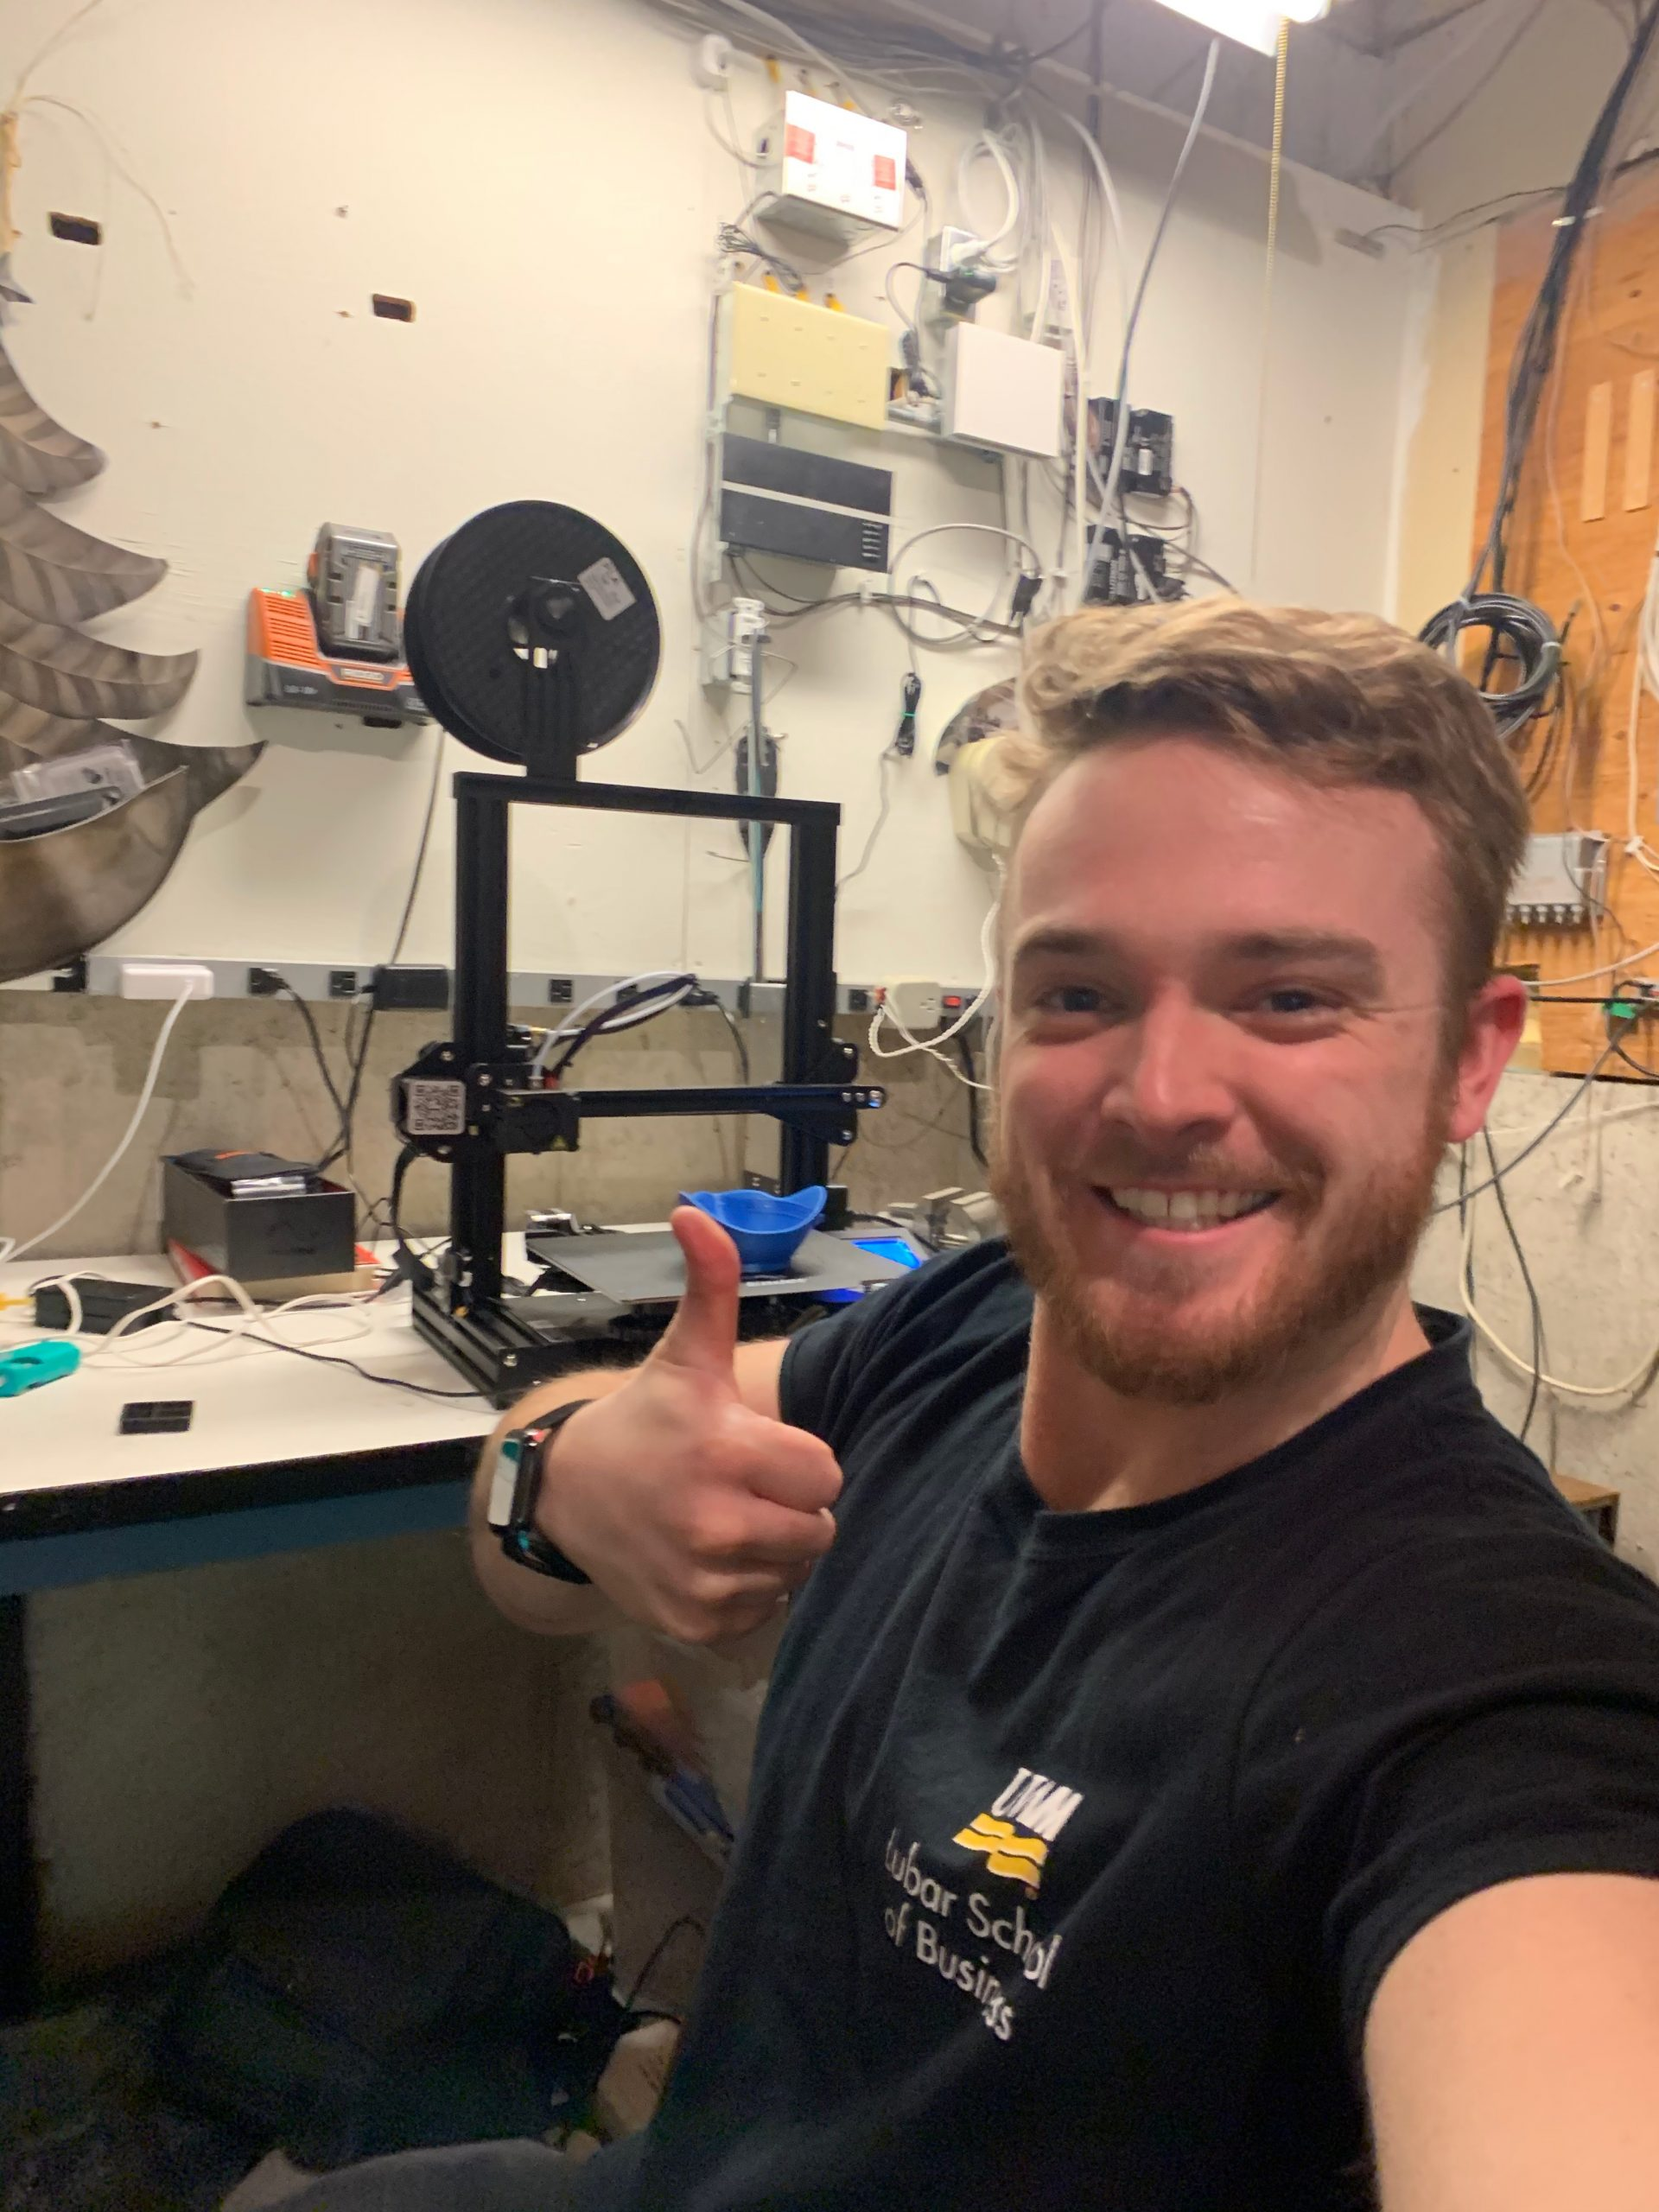 Nathan giving thumbs up in front of 3D printer.